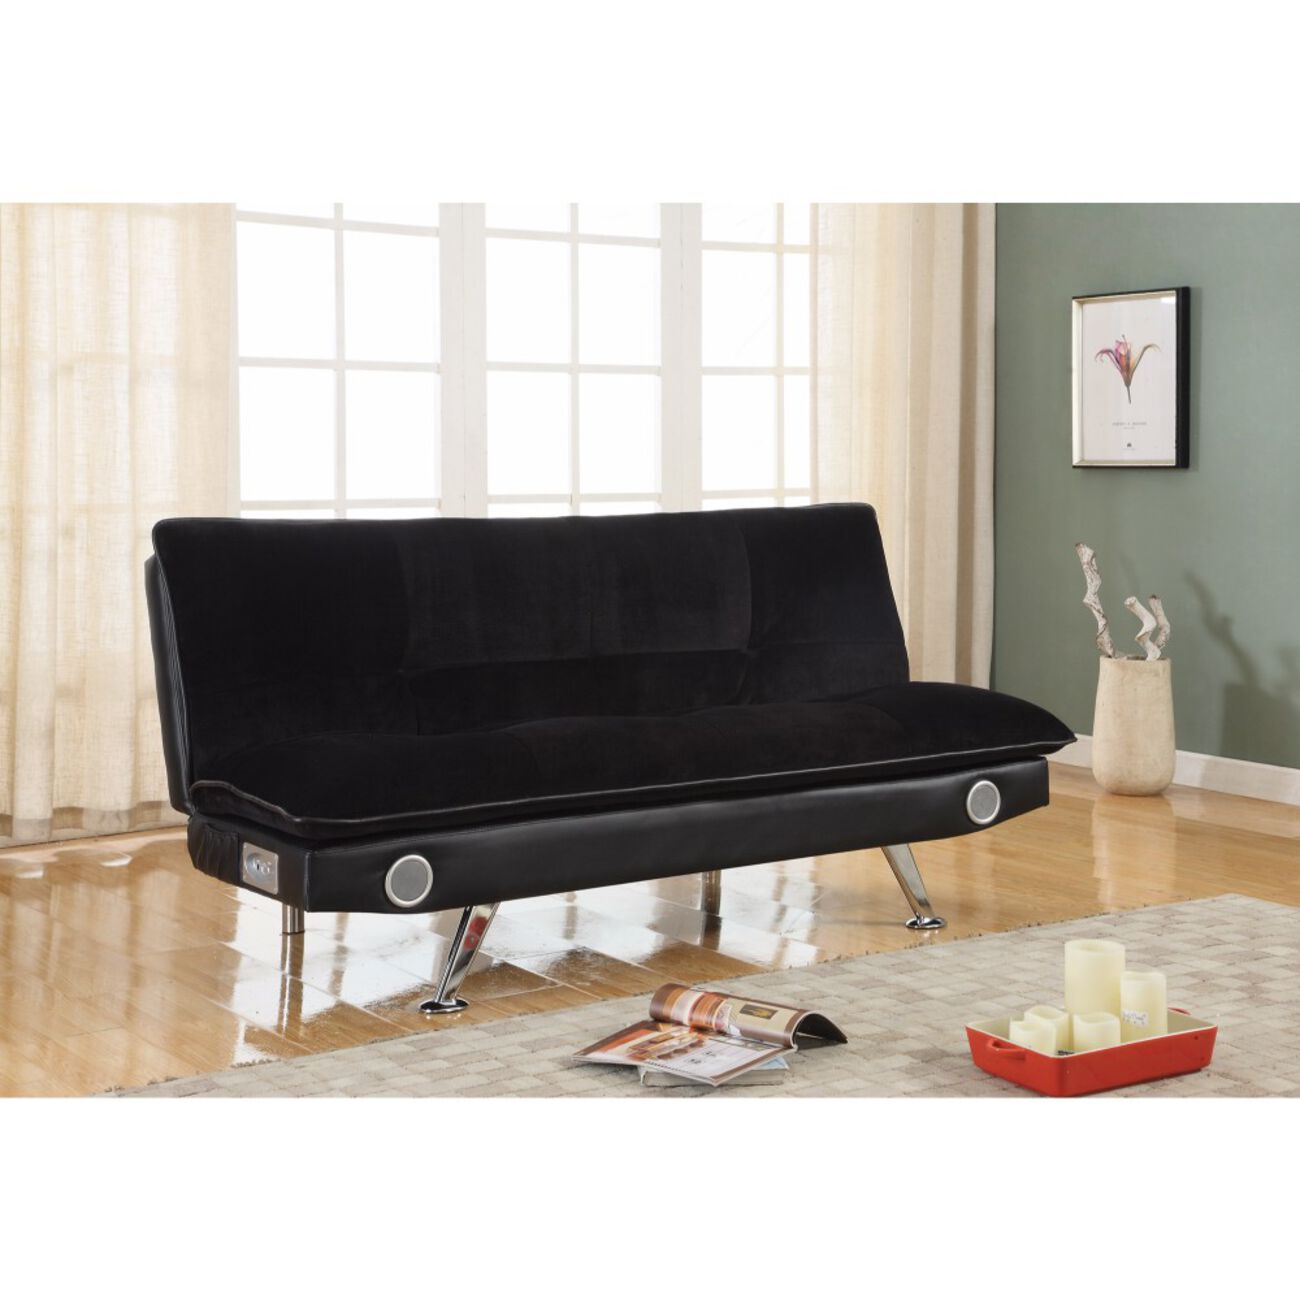 Retro Chick Sofa Bed with speakers, Black